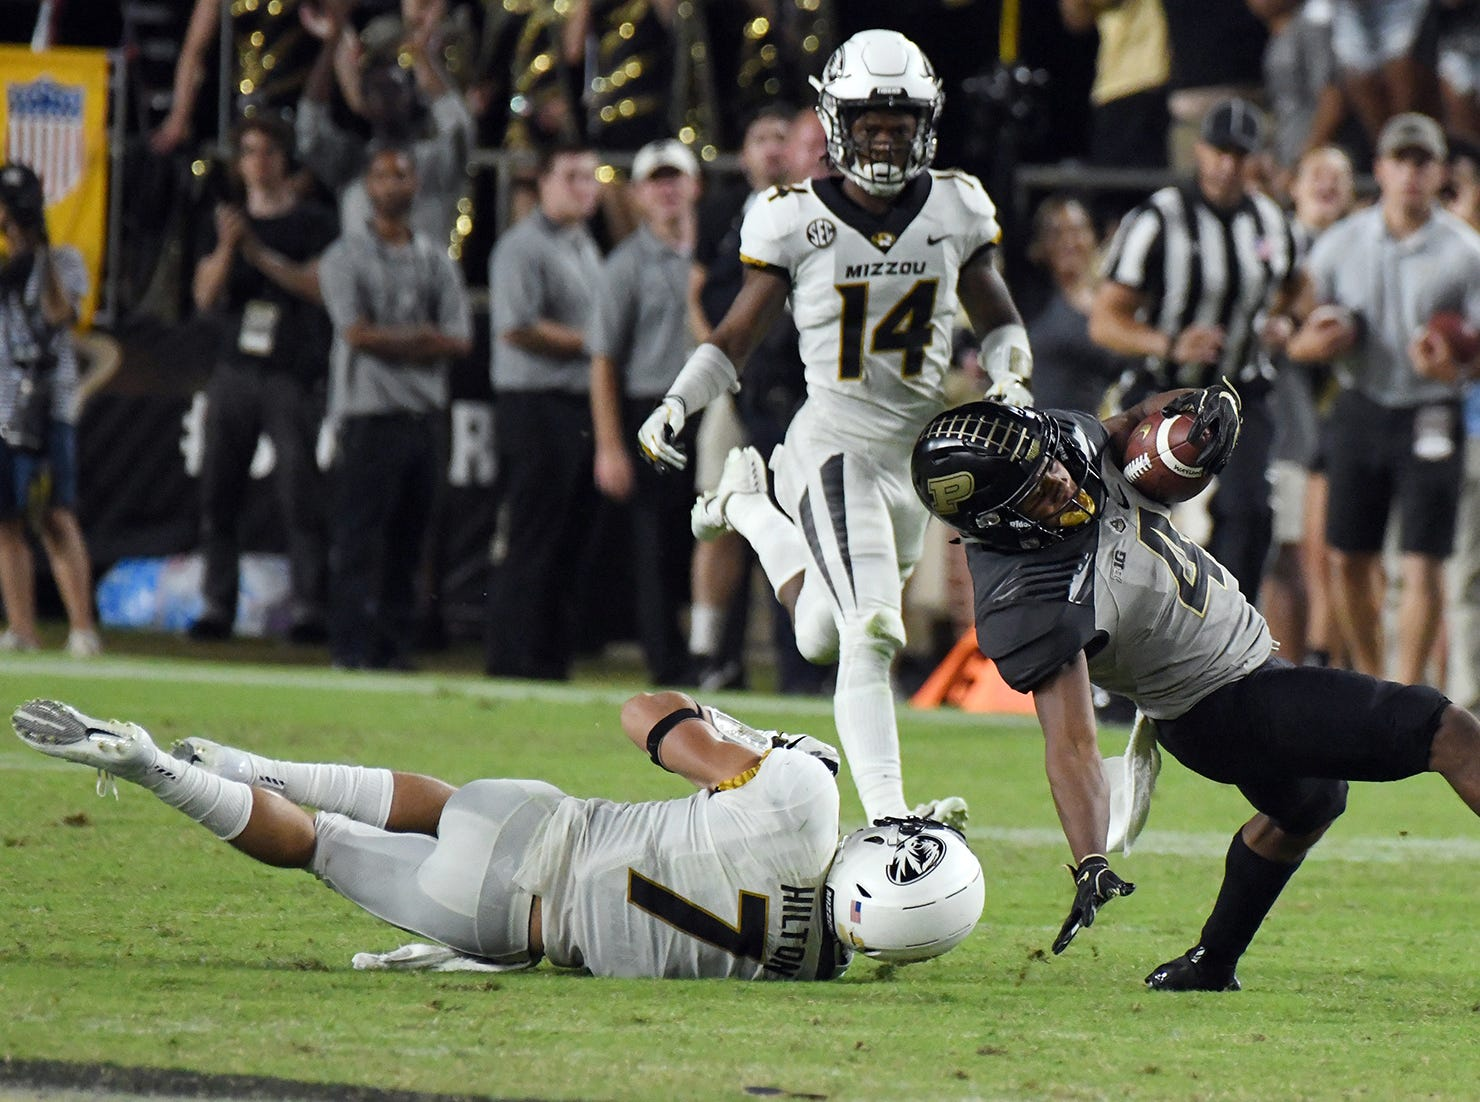 Rondale Moore of Purdue slips past Cam Hilton of Missouri in the second half Saturday, September 15, 2018, in West Lafayette. Purdue lost 40-37 on a Missouri field goal as time expired.